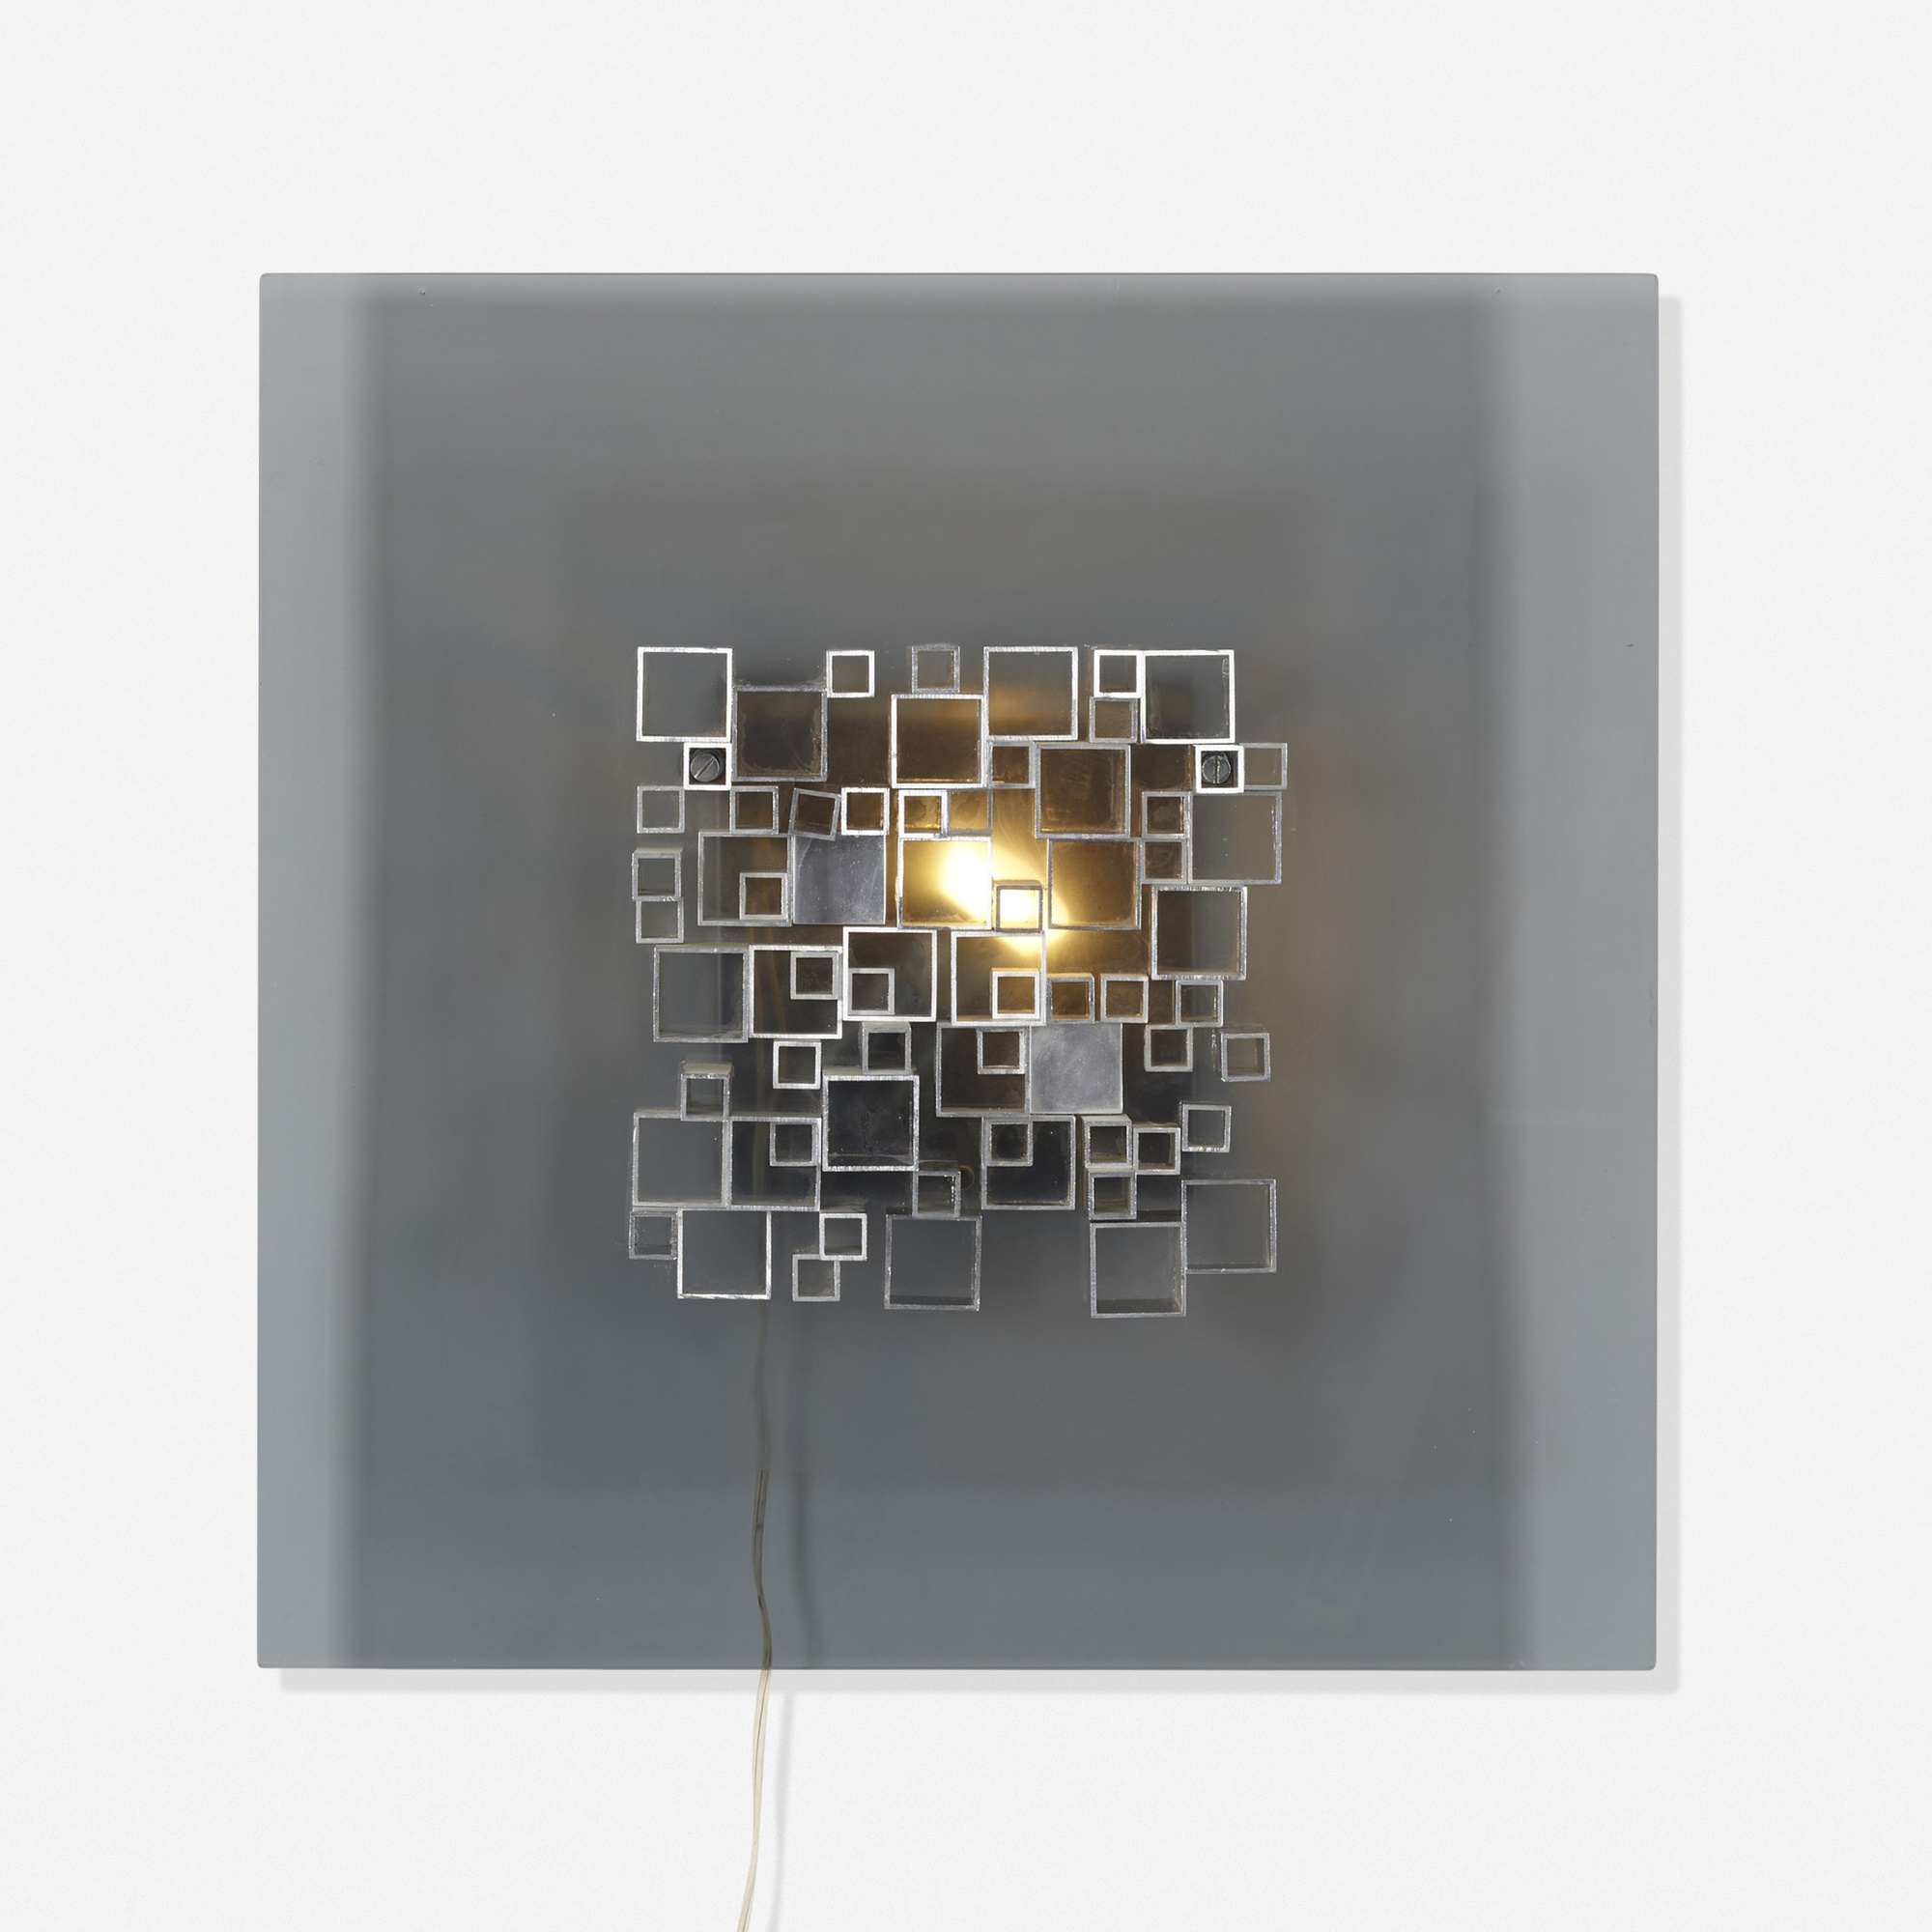 186: Angelo Brotto / wall light (1 of 1)